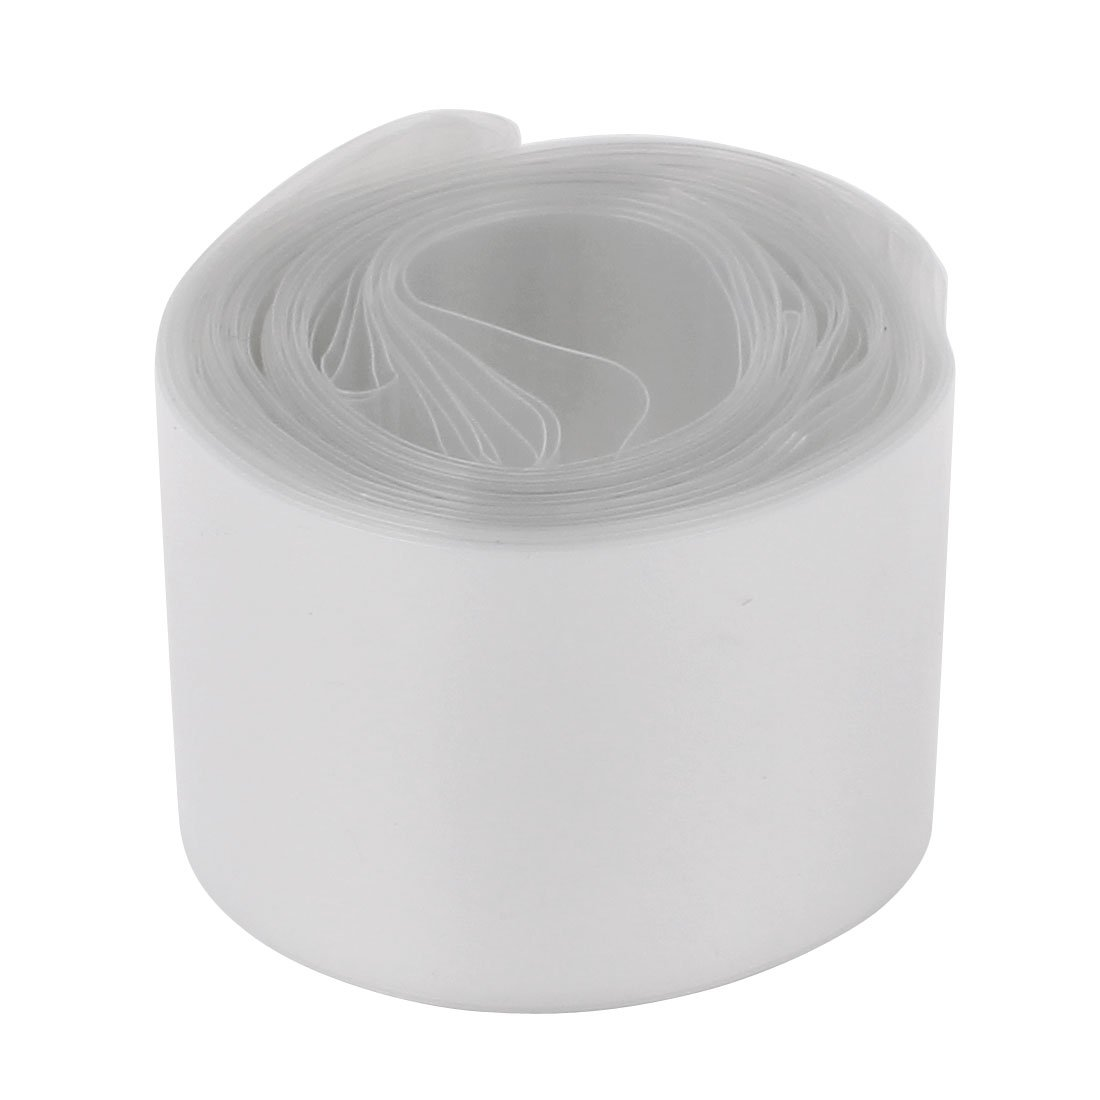 Uxcell a16111400ux0376 30mm Diameter 6M Length PVC Heat Shrink Tube Tubing Clear for 1 x 18650 Battery, PVC